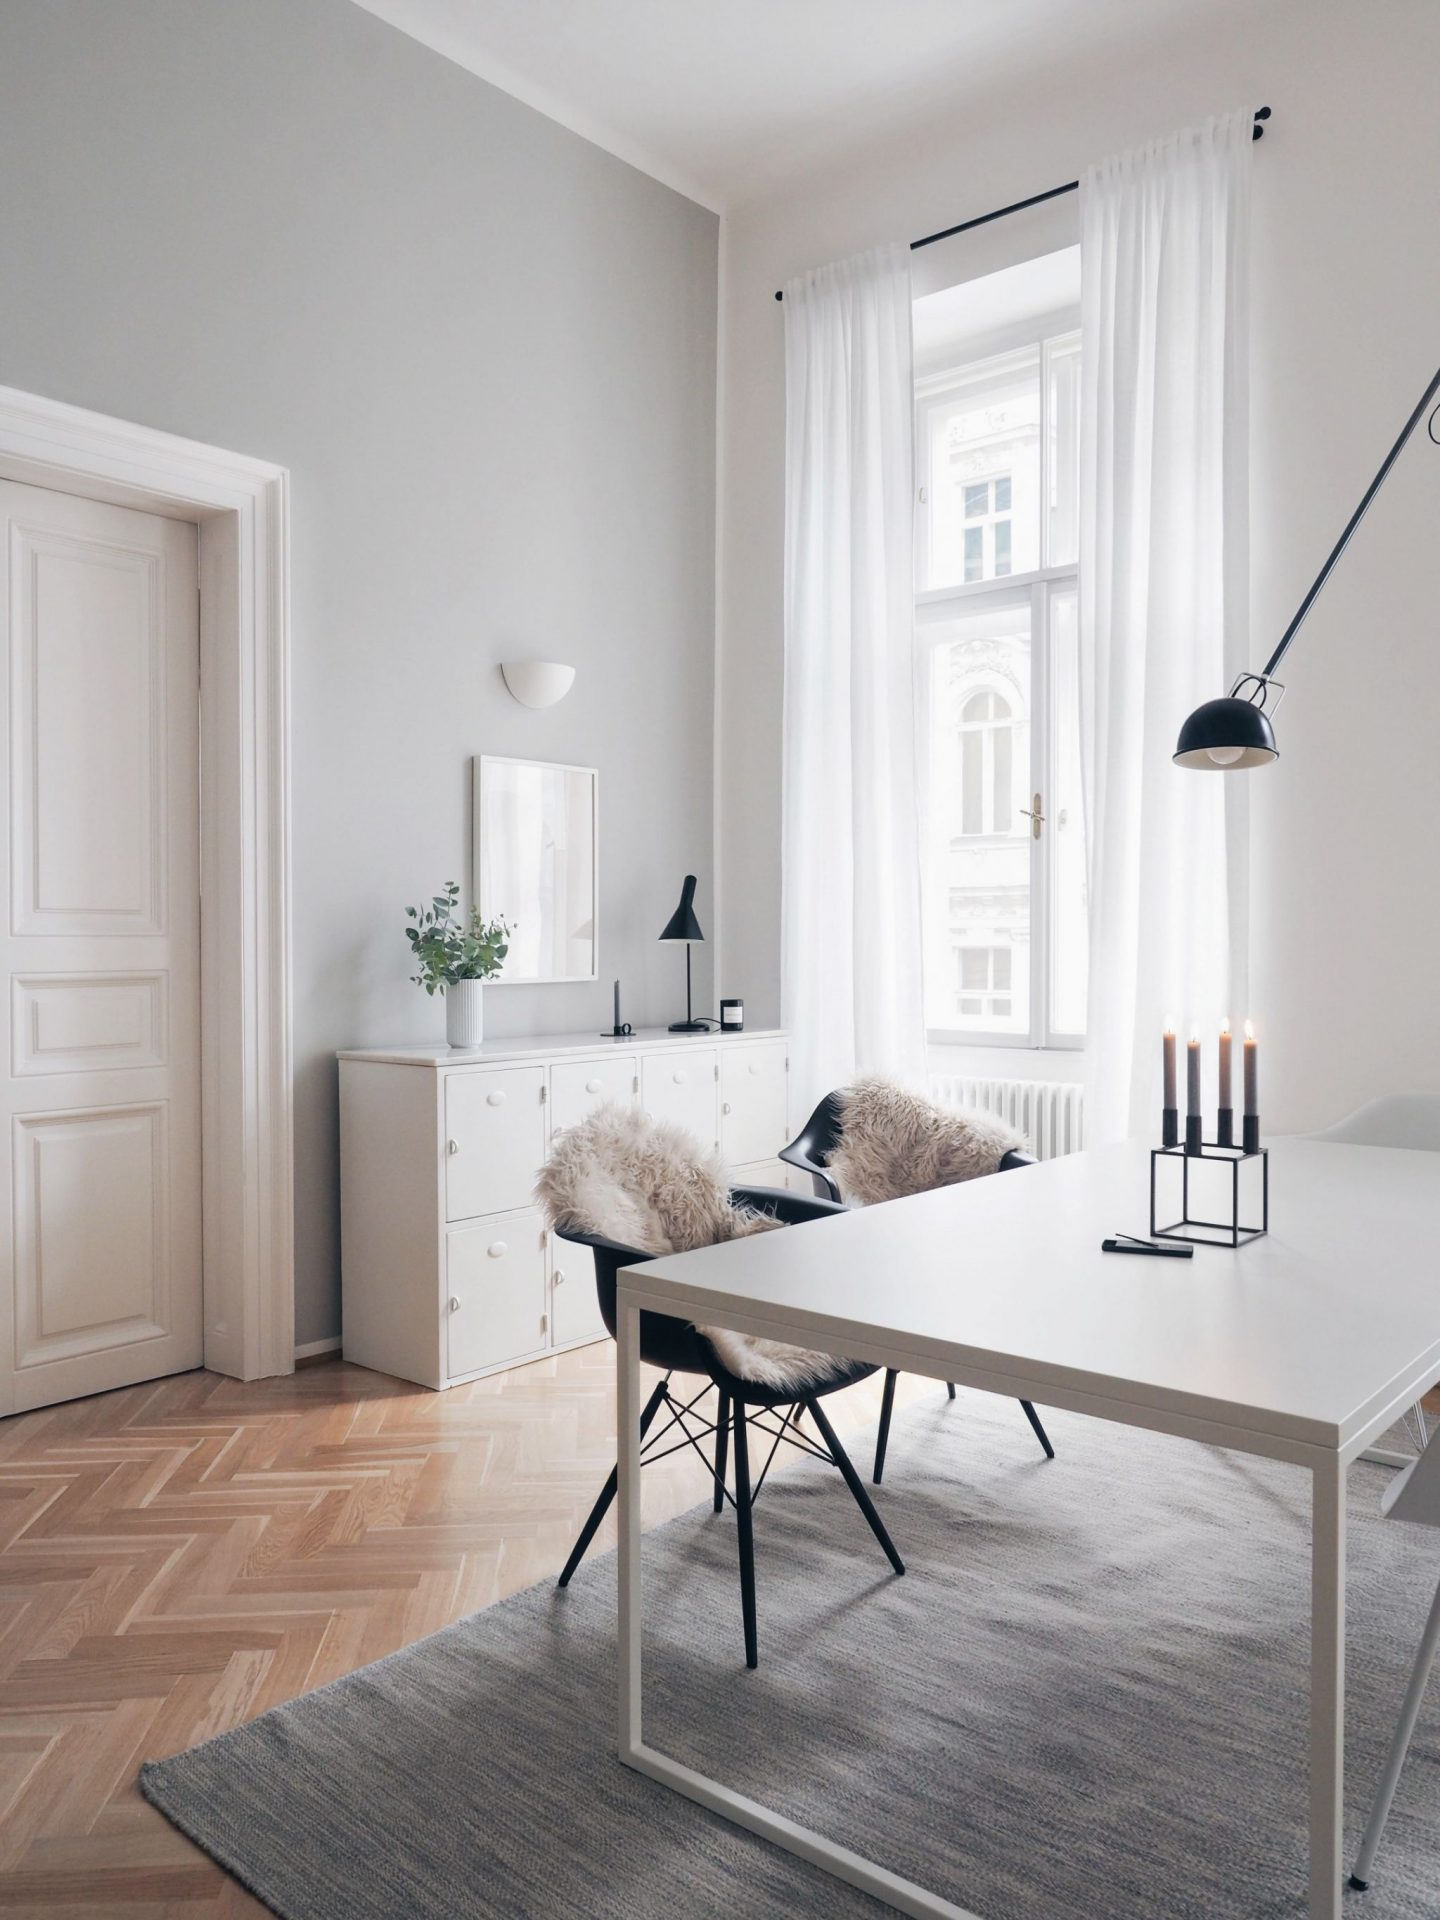 Farrow & Ball Pavilion Gray in a beautifully designed space by Traumzuhause. Come discover 9 Timeless Grey-Blue Paint Color Ideas For Quiet, Sophisticated Greys for Walls, Furniture and Trim! #paintcolors #bluegrey